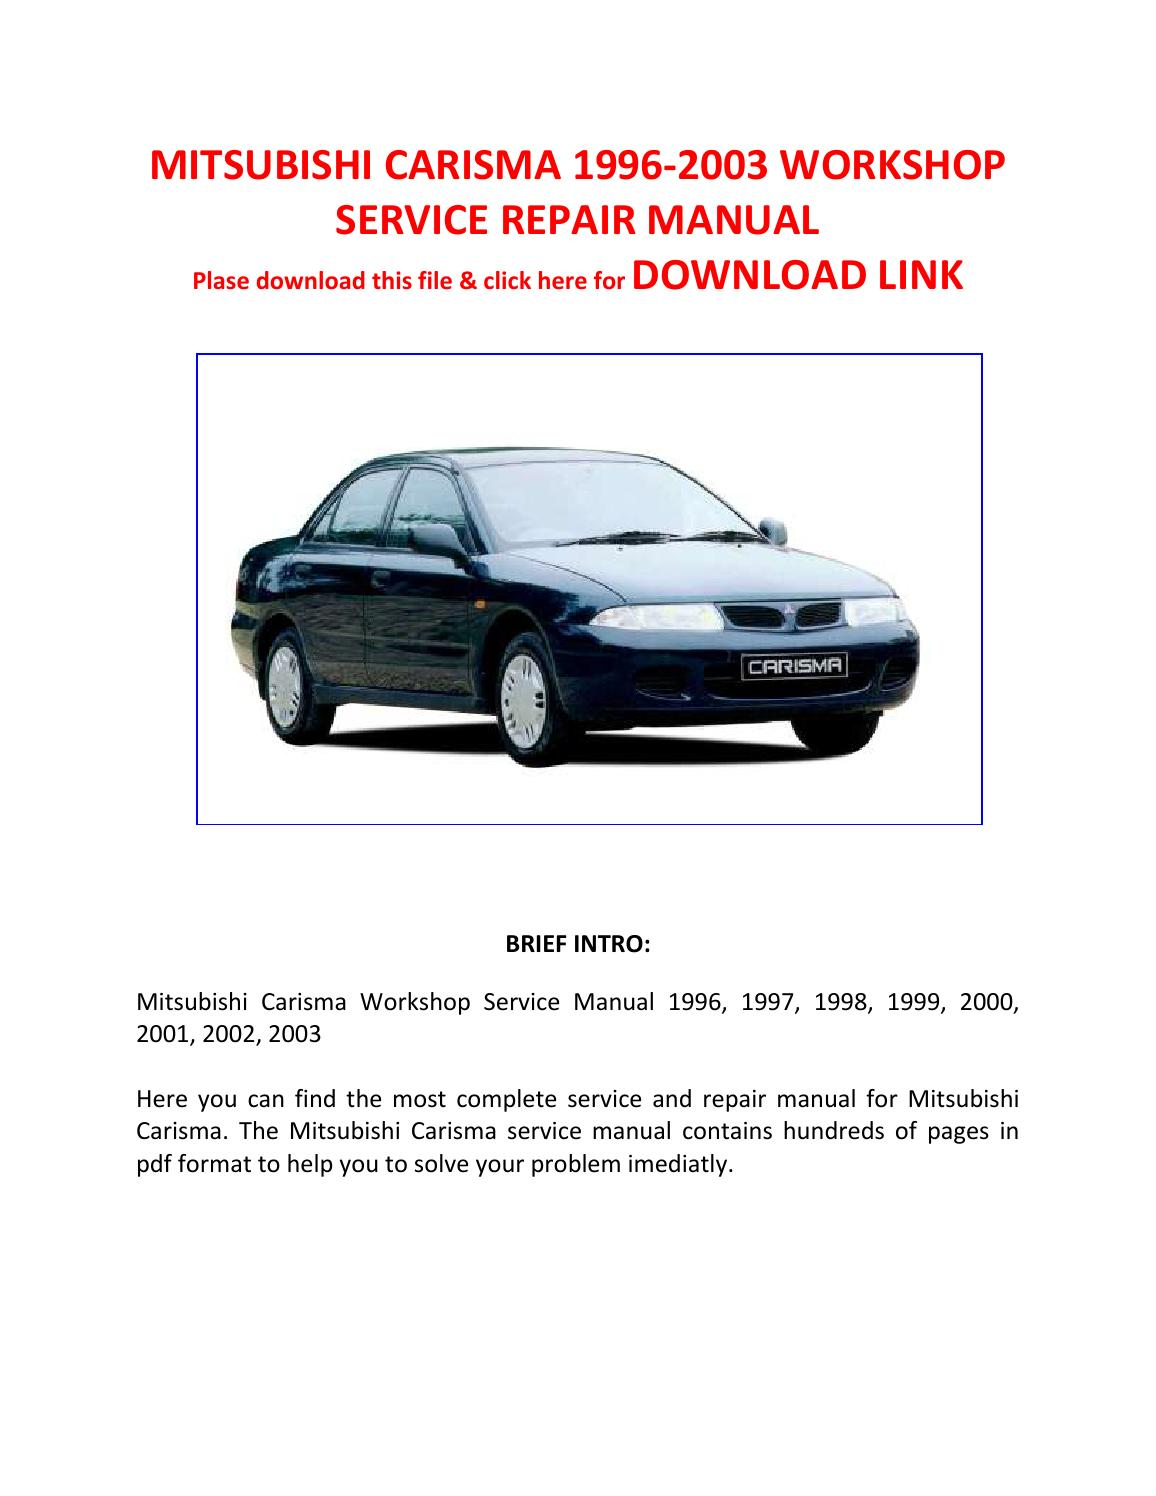 mitsubishi carisma 2002 repair service manual